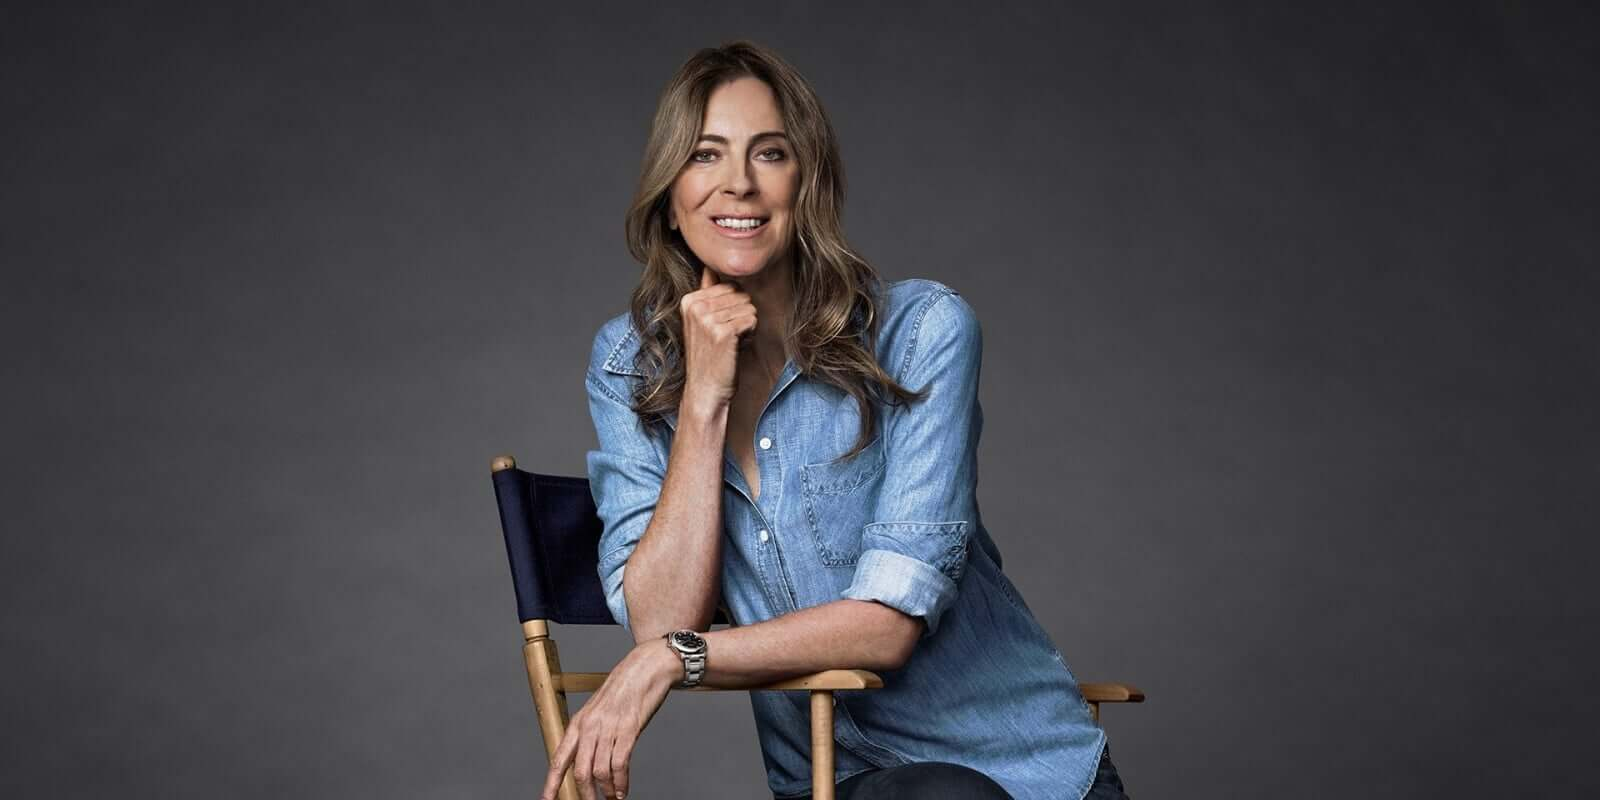 Best Movie Directors - Kathryn Bigelow